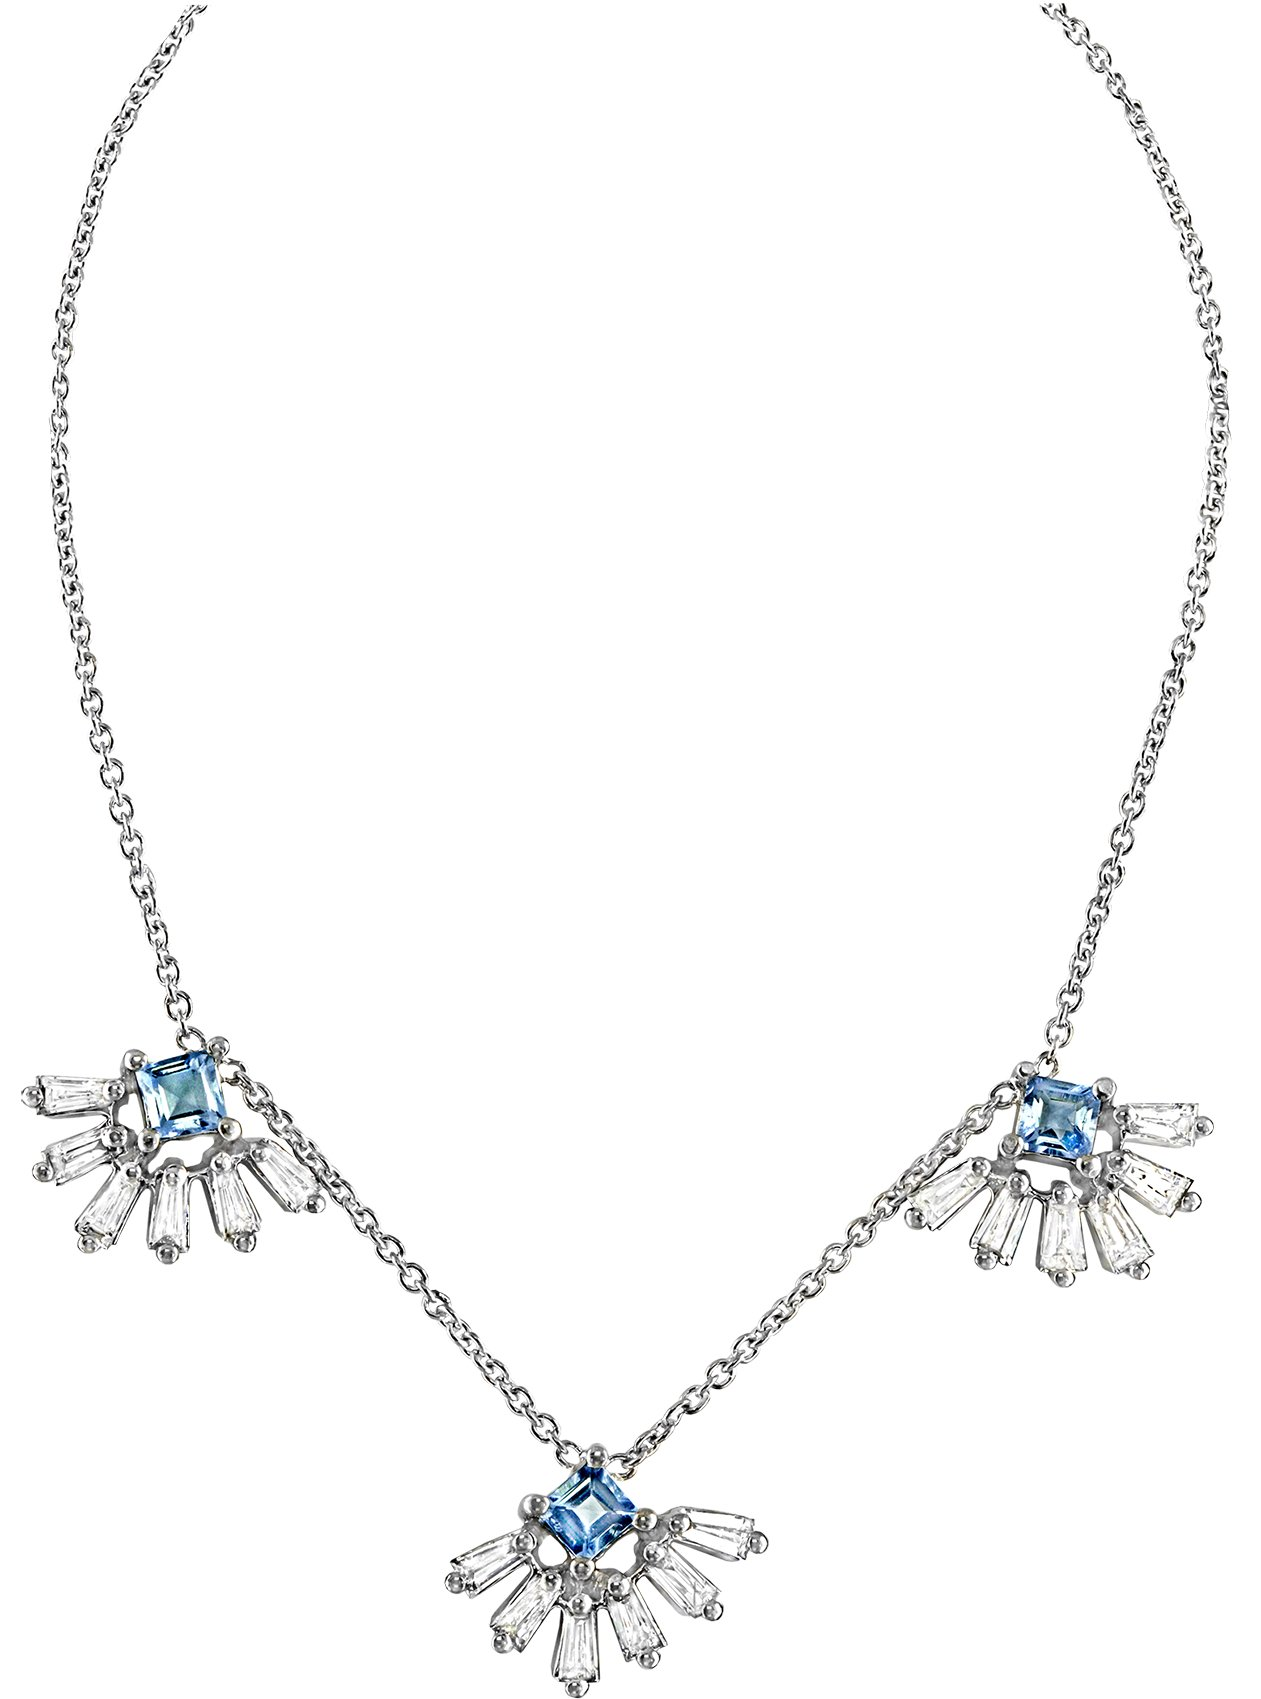 Kela necklace in 18k white gold with 0.75 ct. t.w. aquamarine and 1.1 cts. t.w. diamonds, $2,640